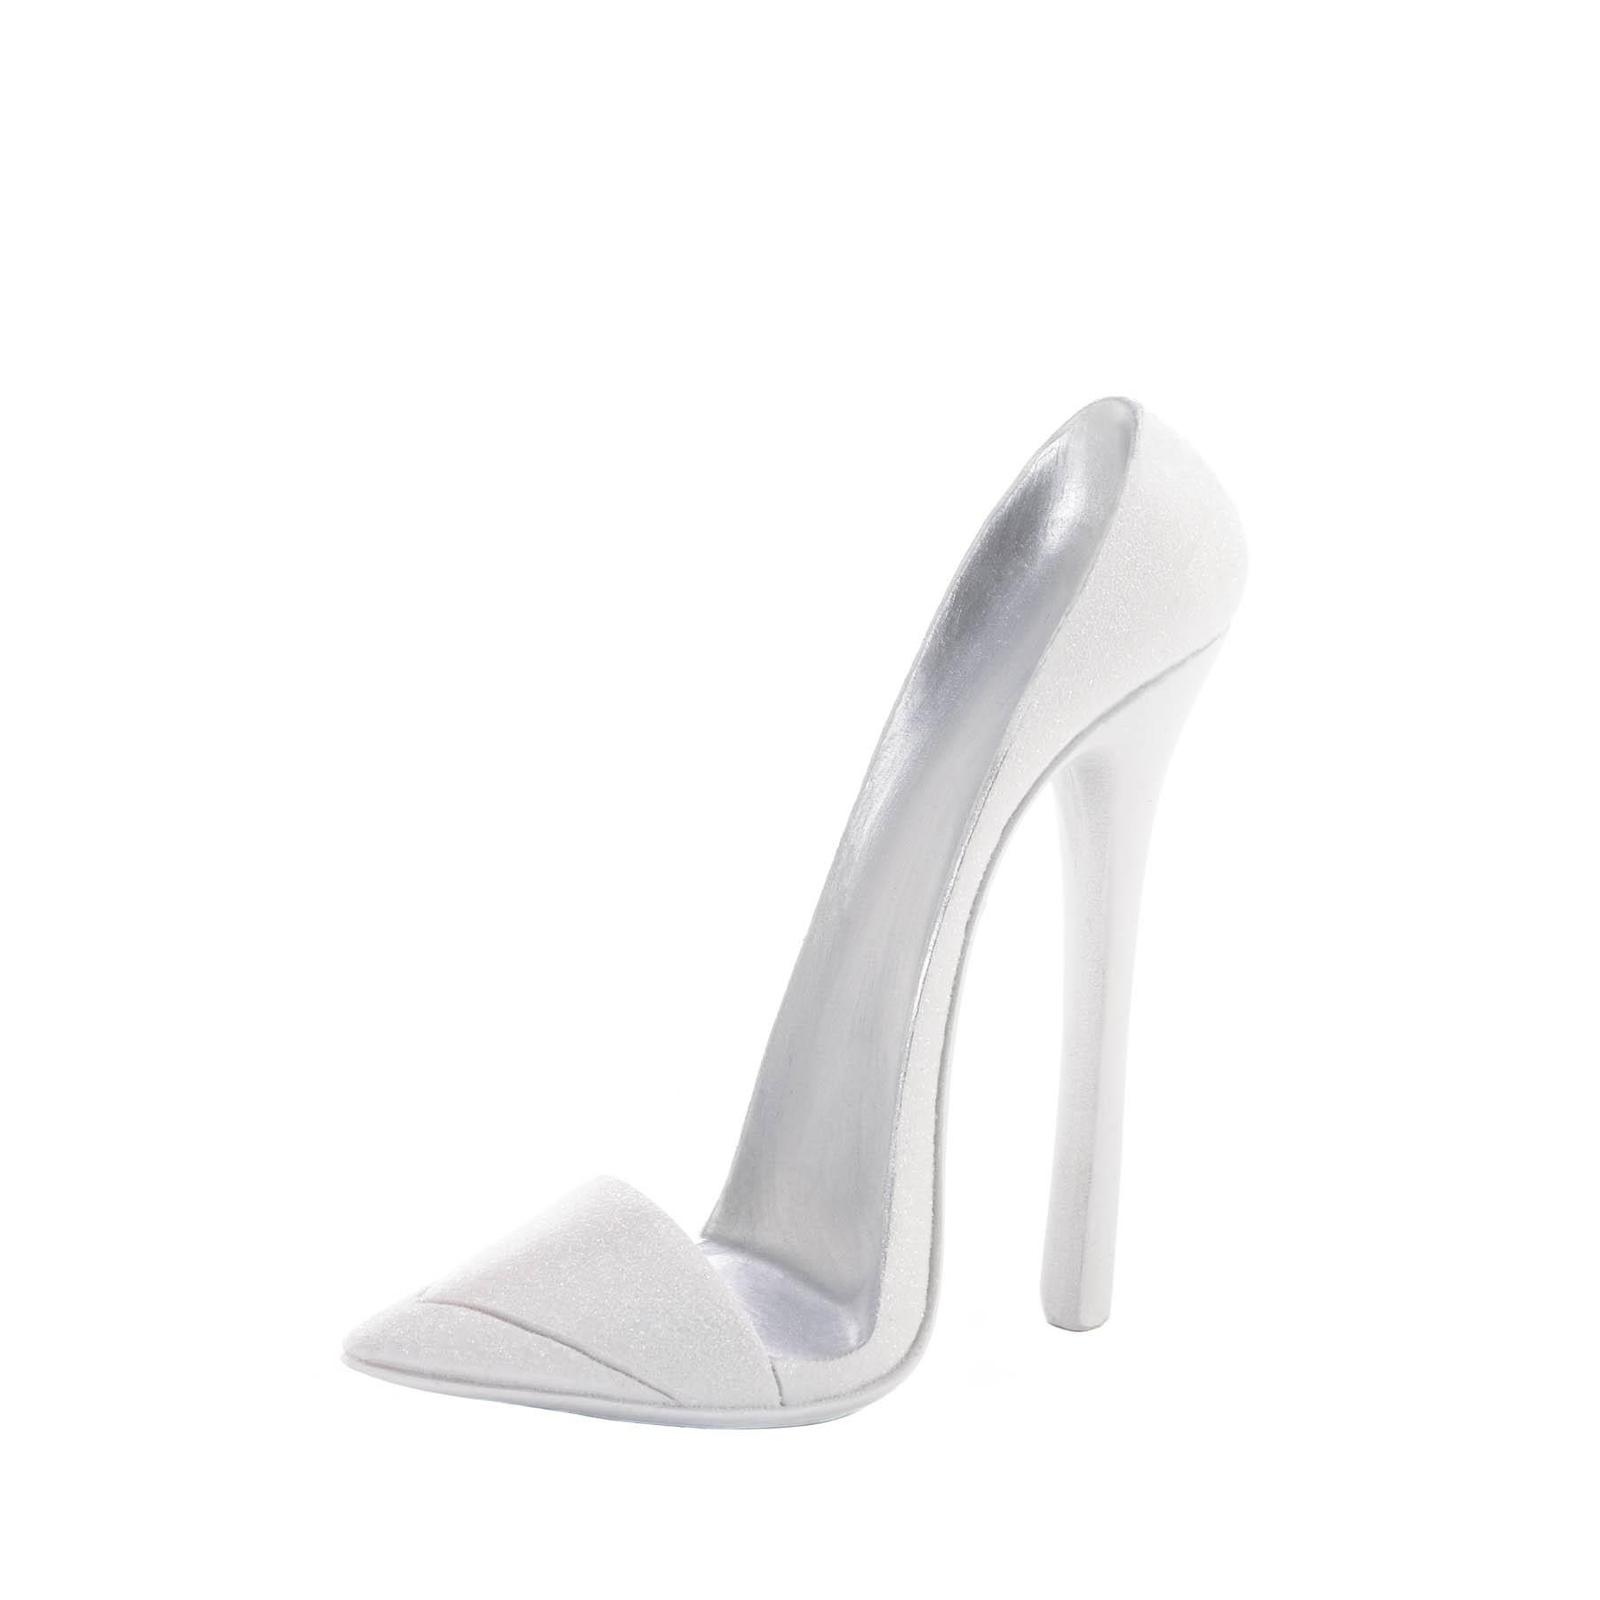 DAZZLING WHITE SHOE PHONE HOLDER Chic High Heel Mobile Cell Stand Gift